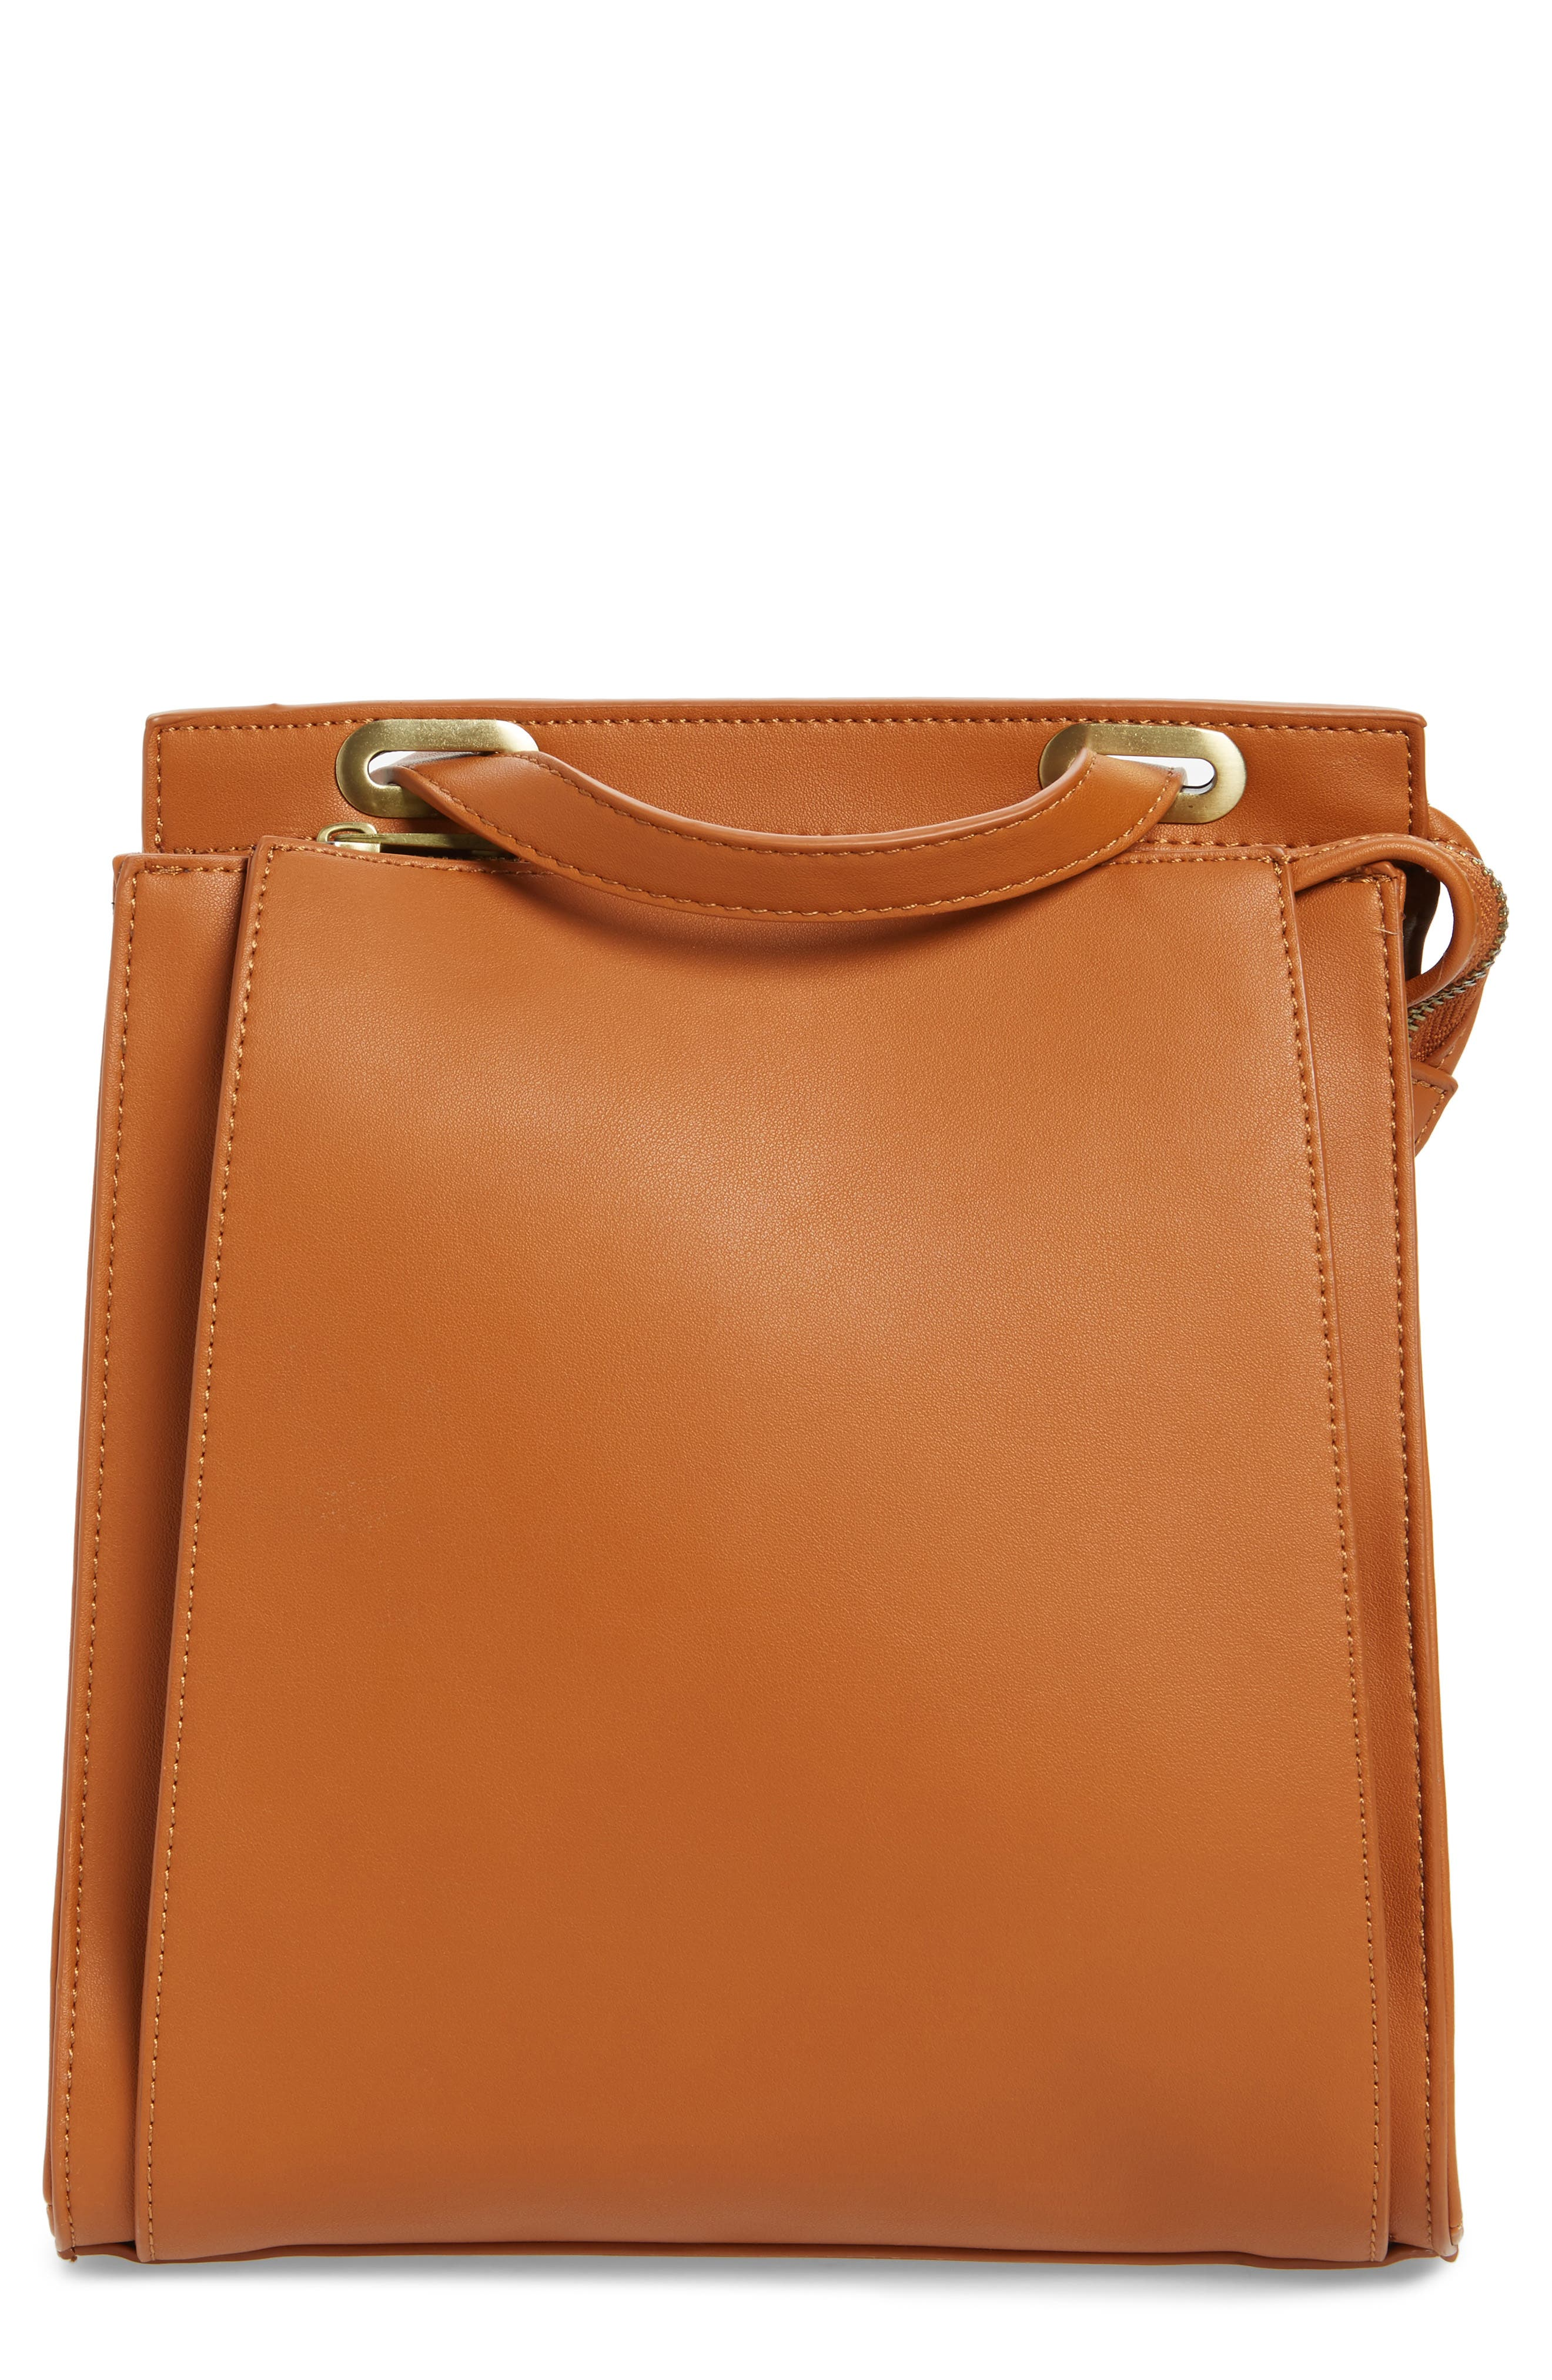 STREET LEVEL Faux Leather Convertible Backpack - Brown in Cognac/ Gold